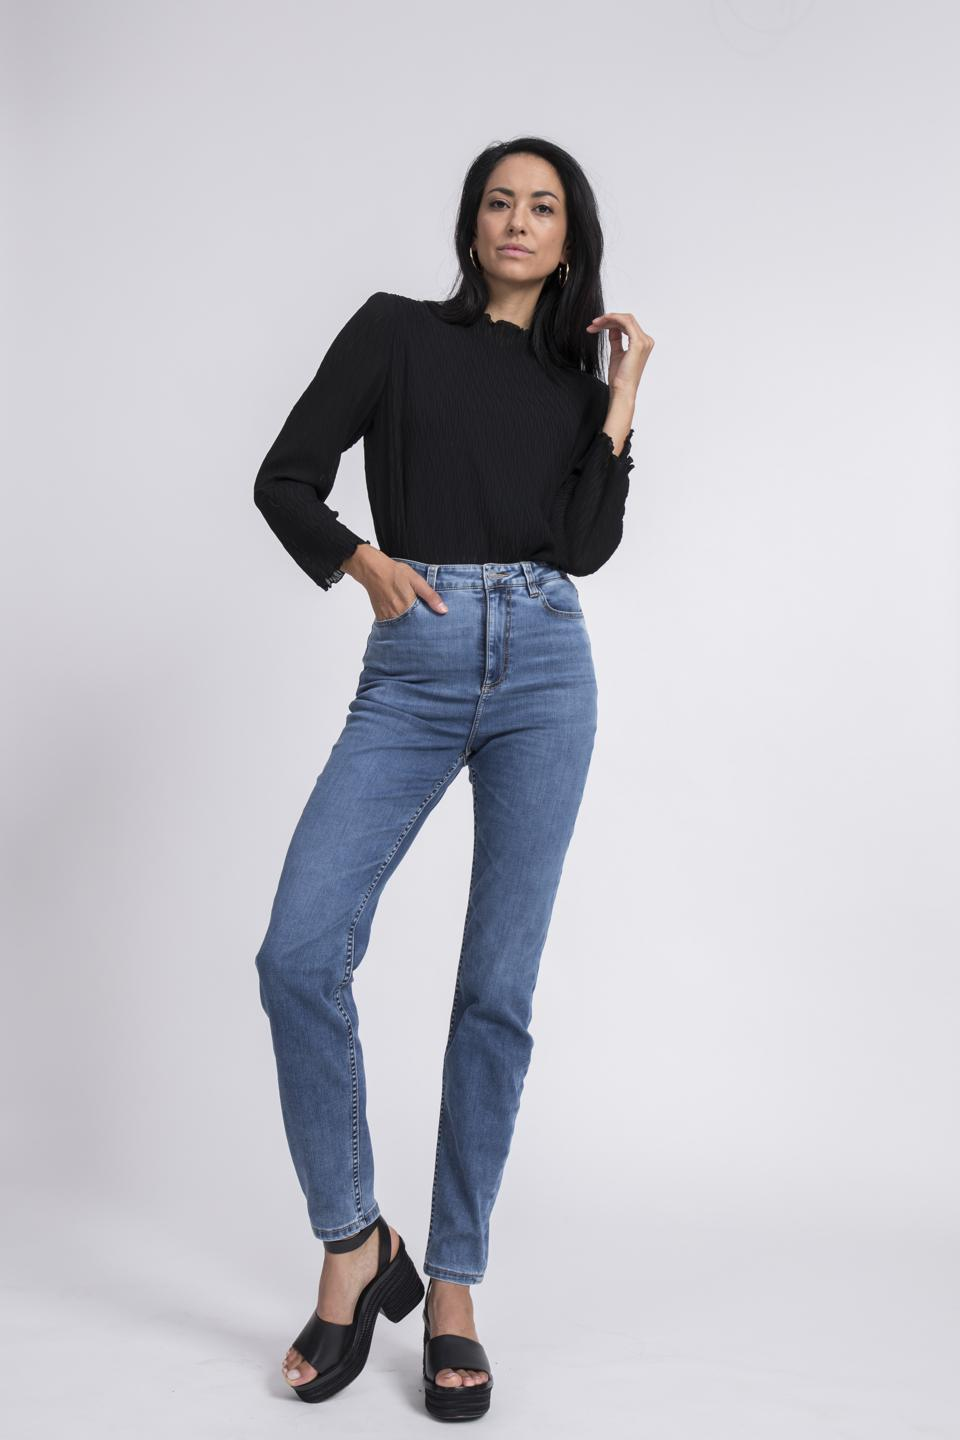 Unspun brand jeans made to order custom fit